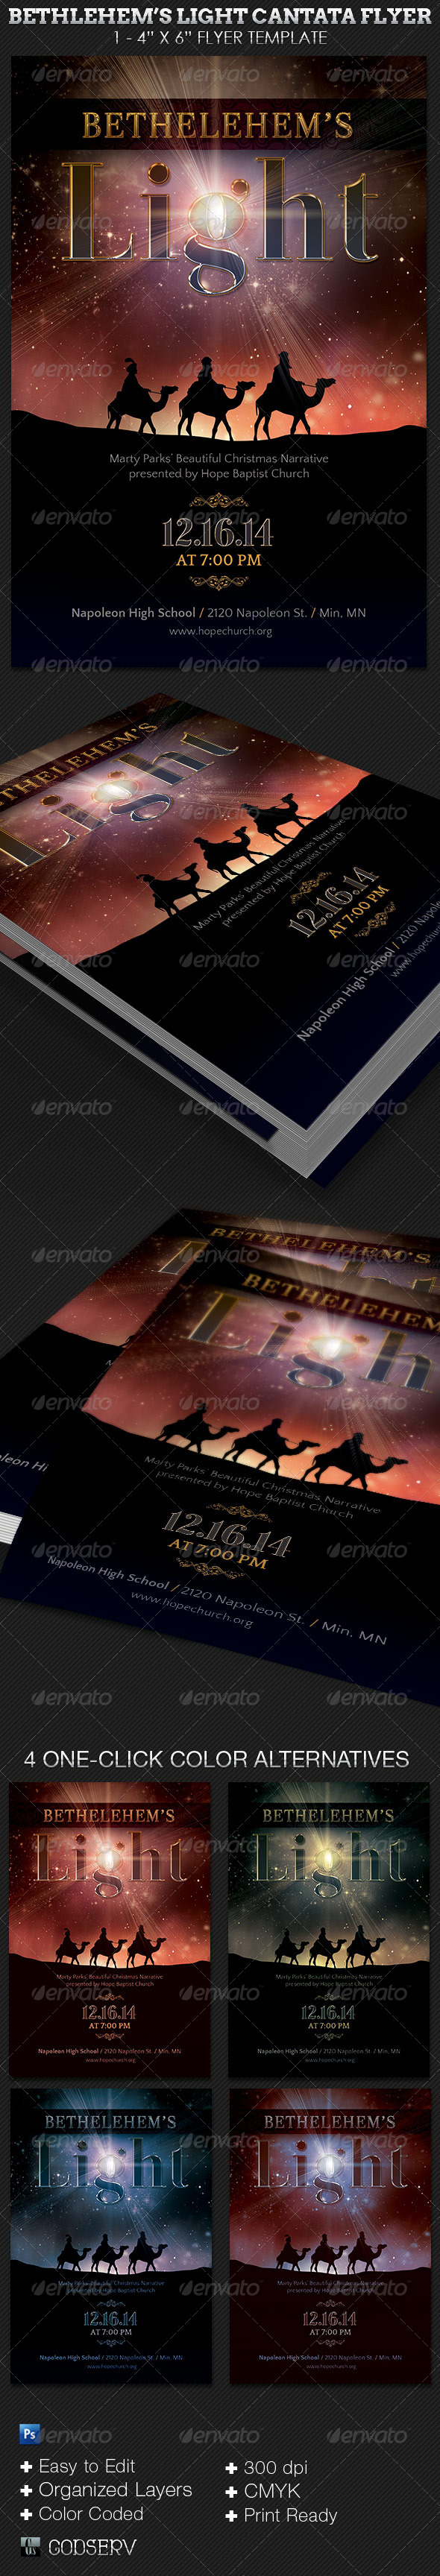 GraphicRiver Bethlehem's Light Cantata Flyer Template 6310302